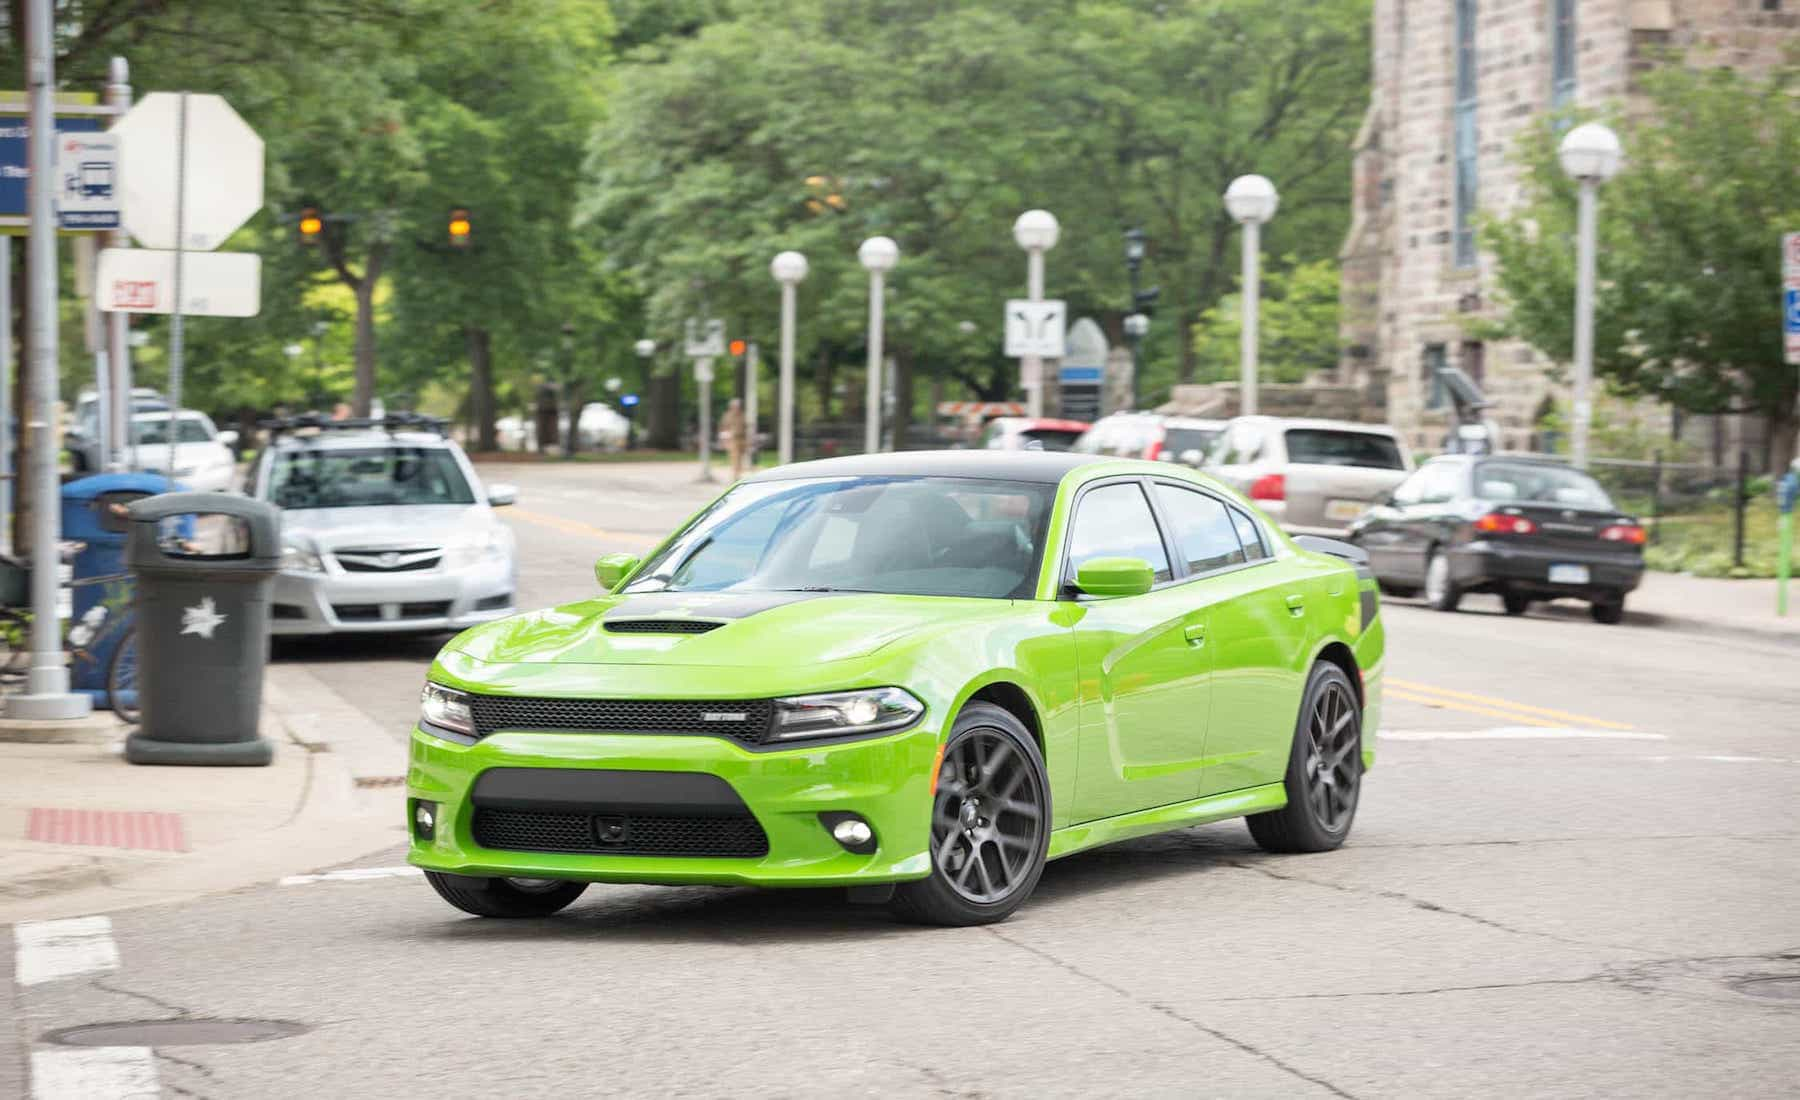 2017 Dodge Charger Daytona 5.7L V8 (Photo 1 of 38)